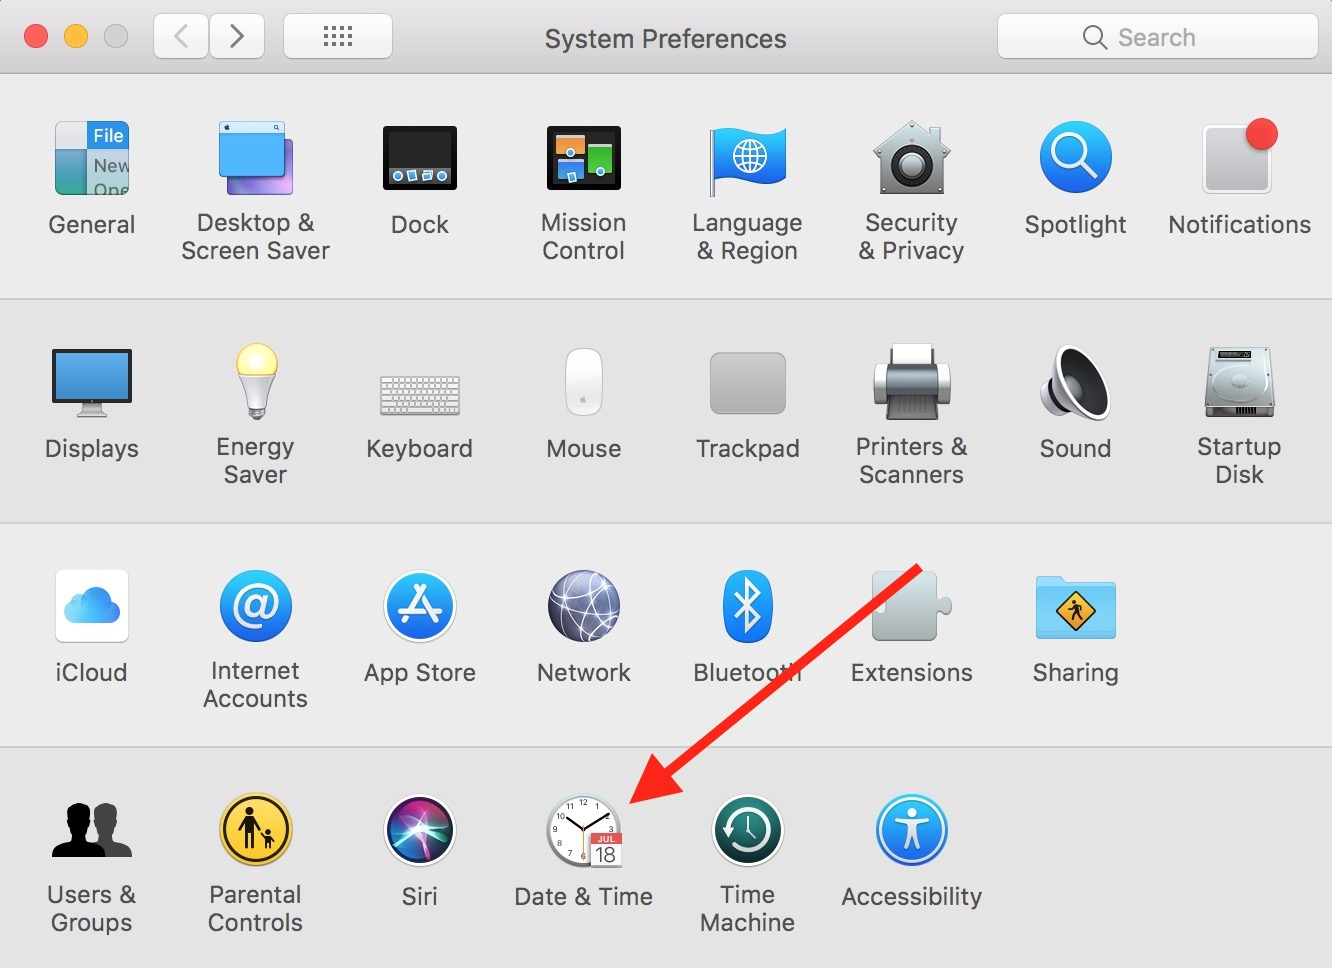 Date & Time in Mac System Preferences